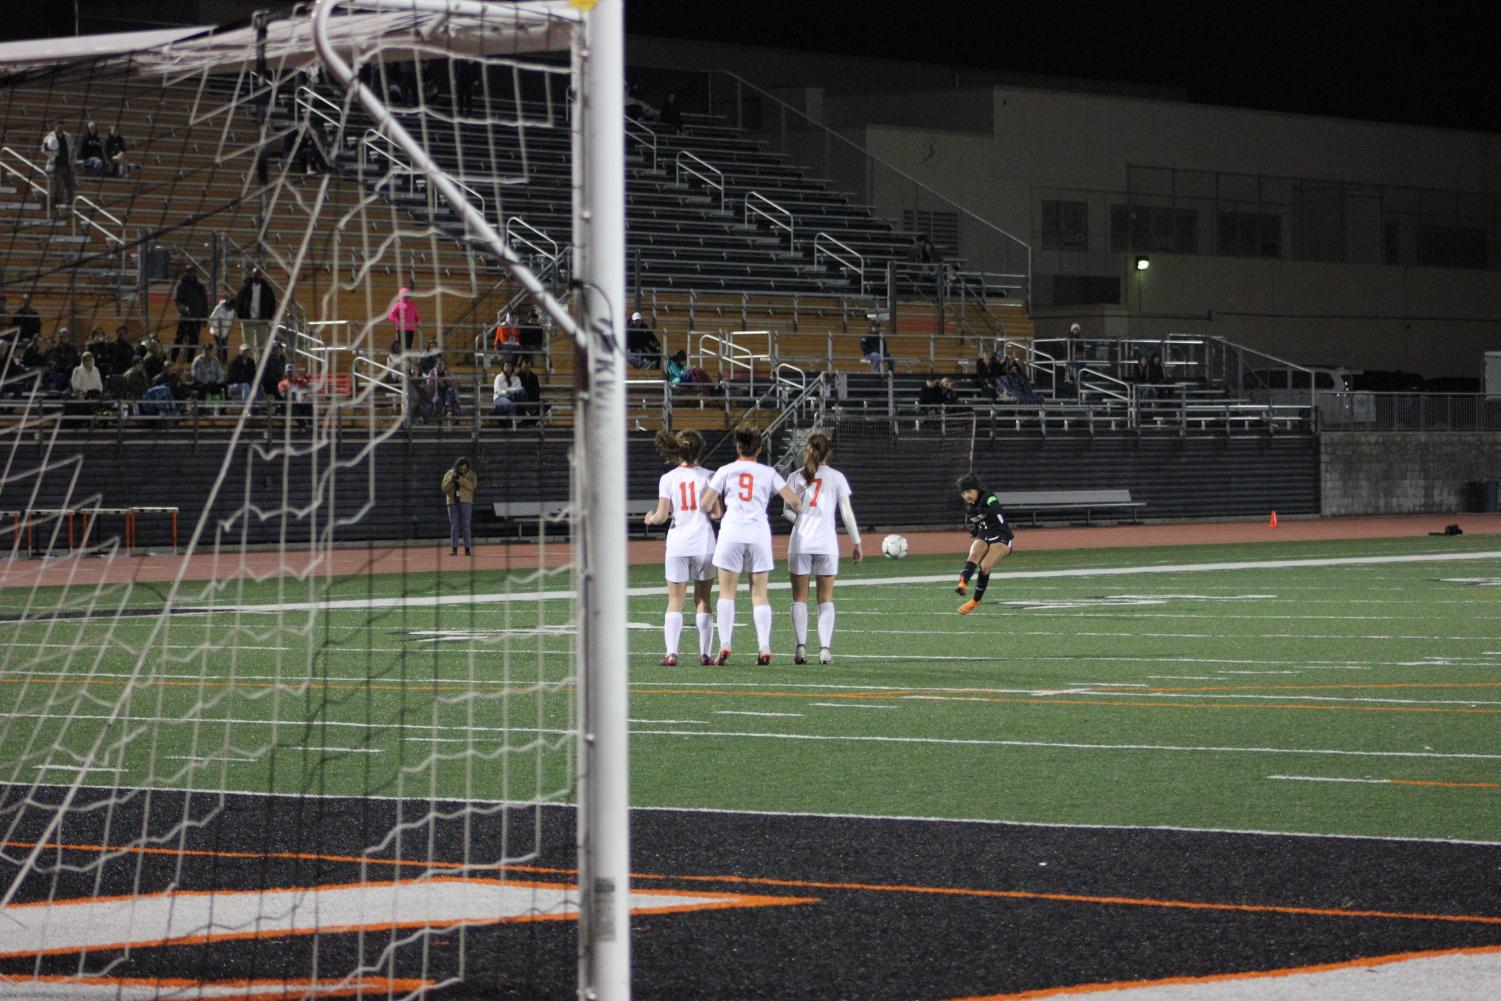 In the team's last attempts to score, Alyssa Elias '19 receives a free kick just outside the goal box.